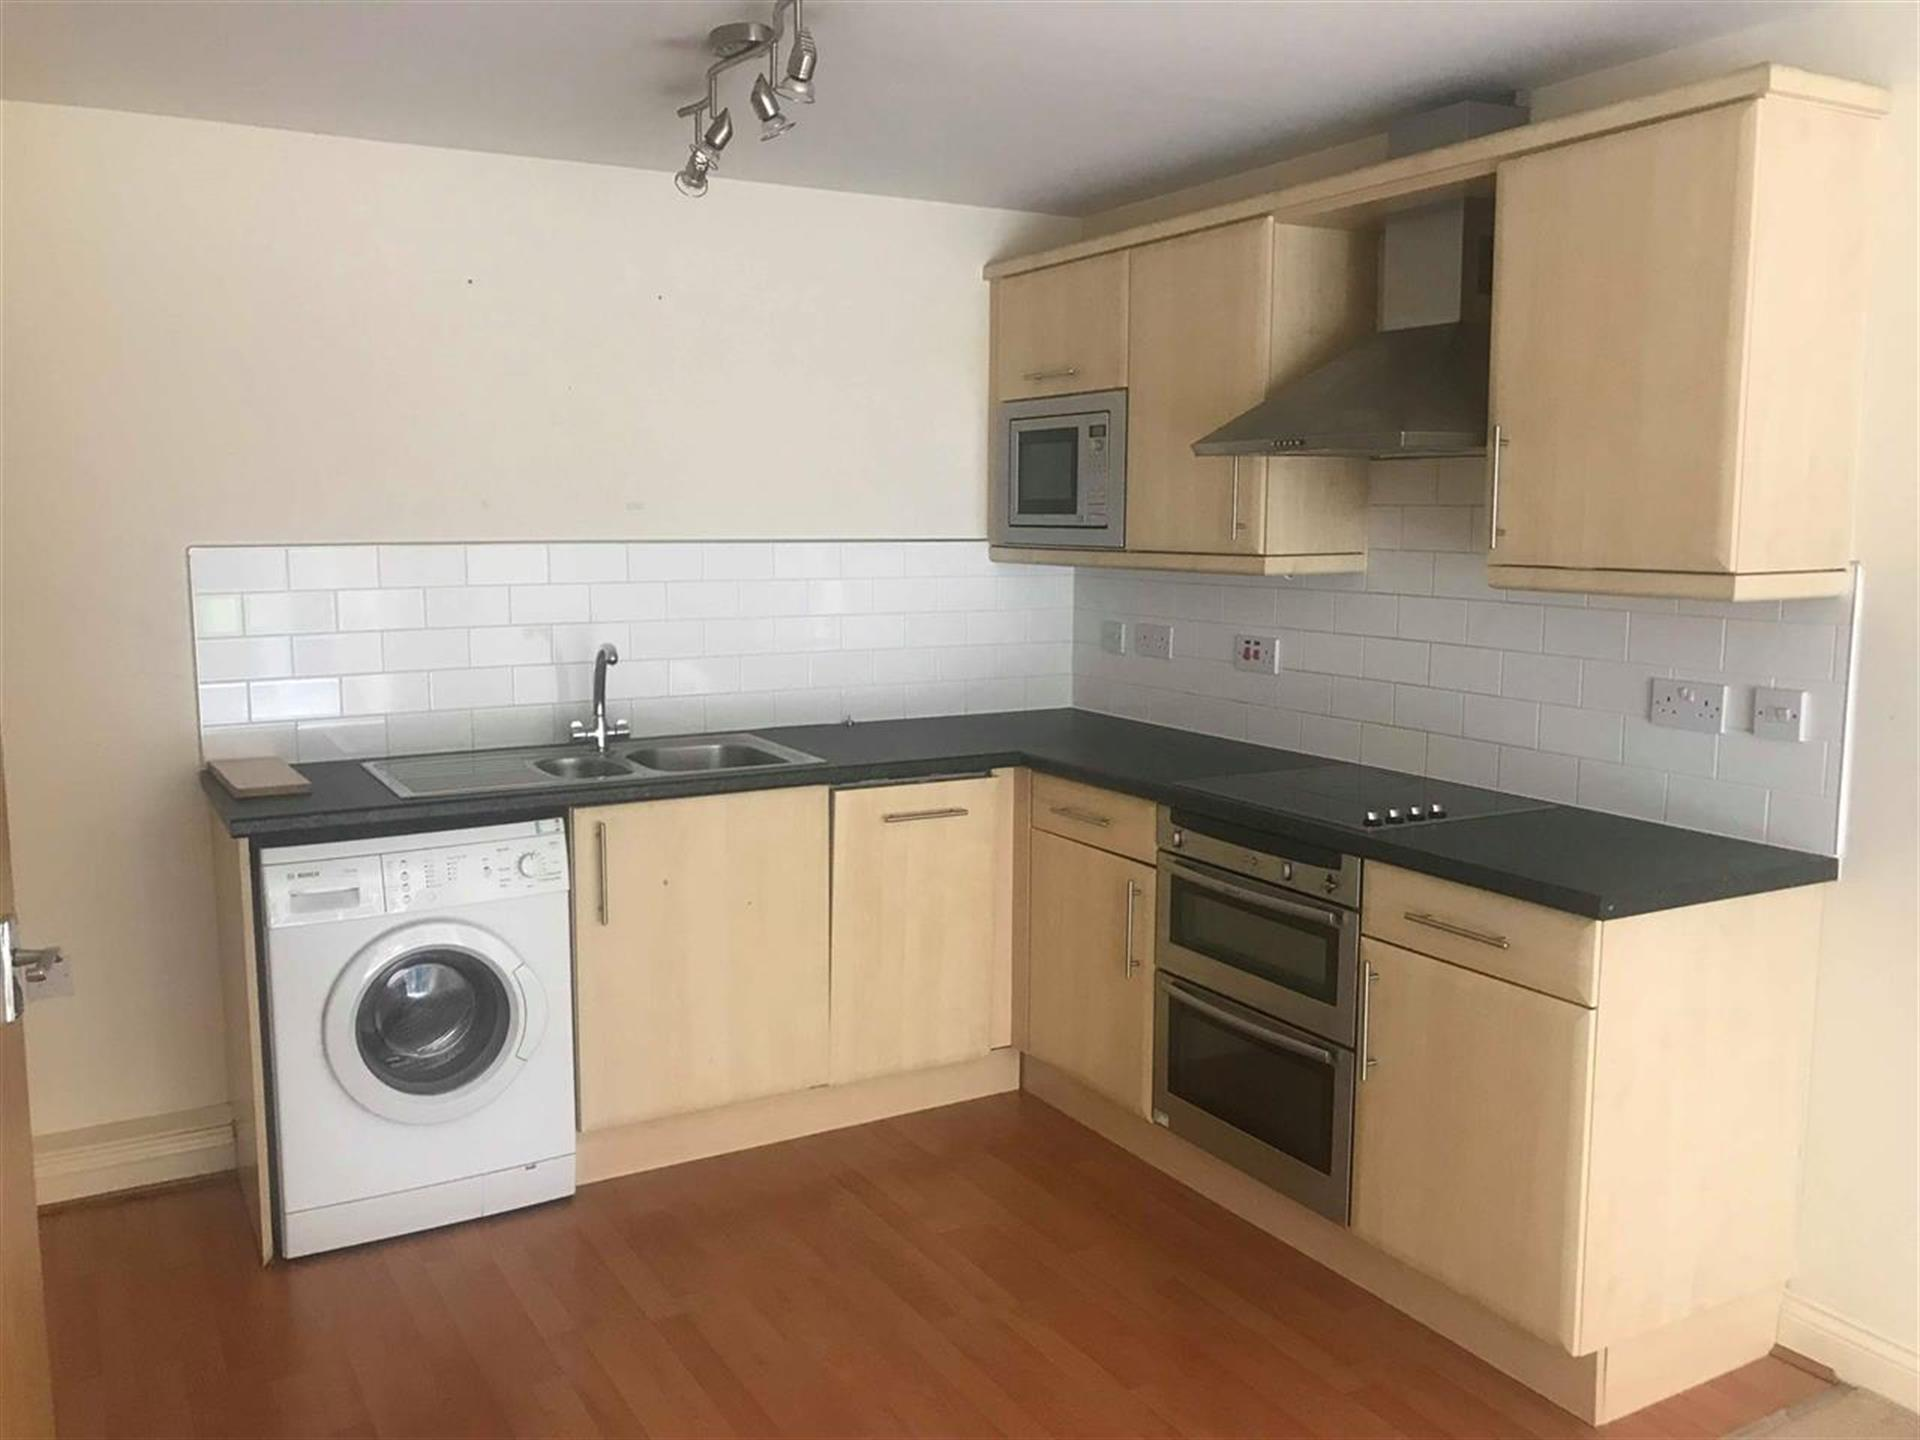 2 Bedroom Apartment Flat / Apartment For Sale - Kitchen